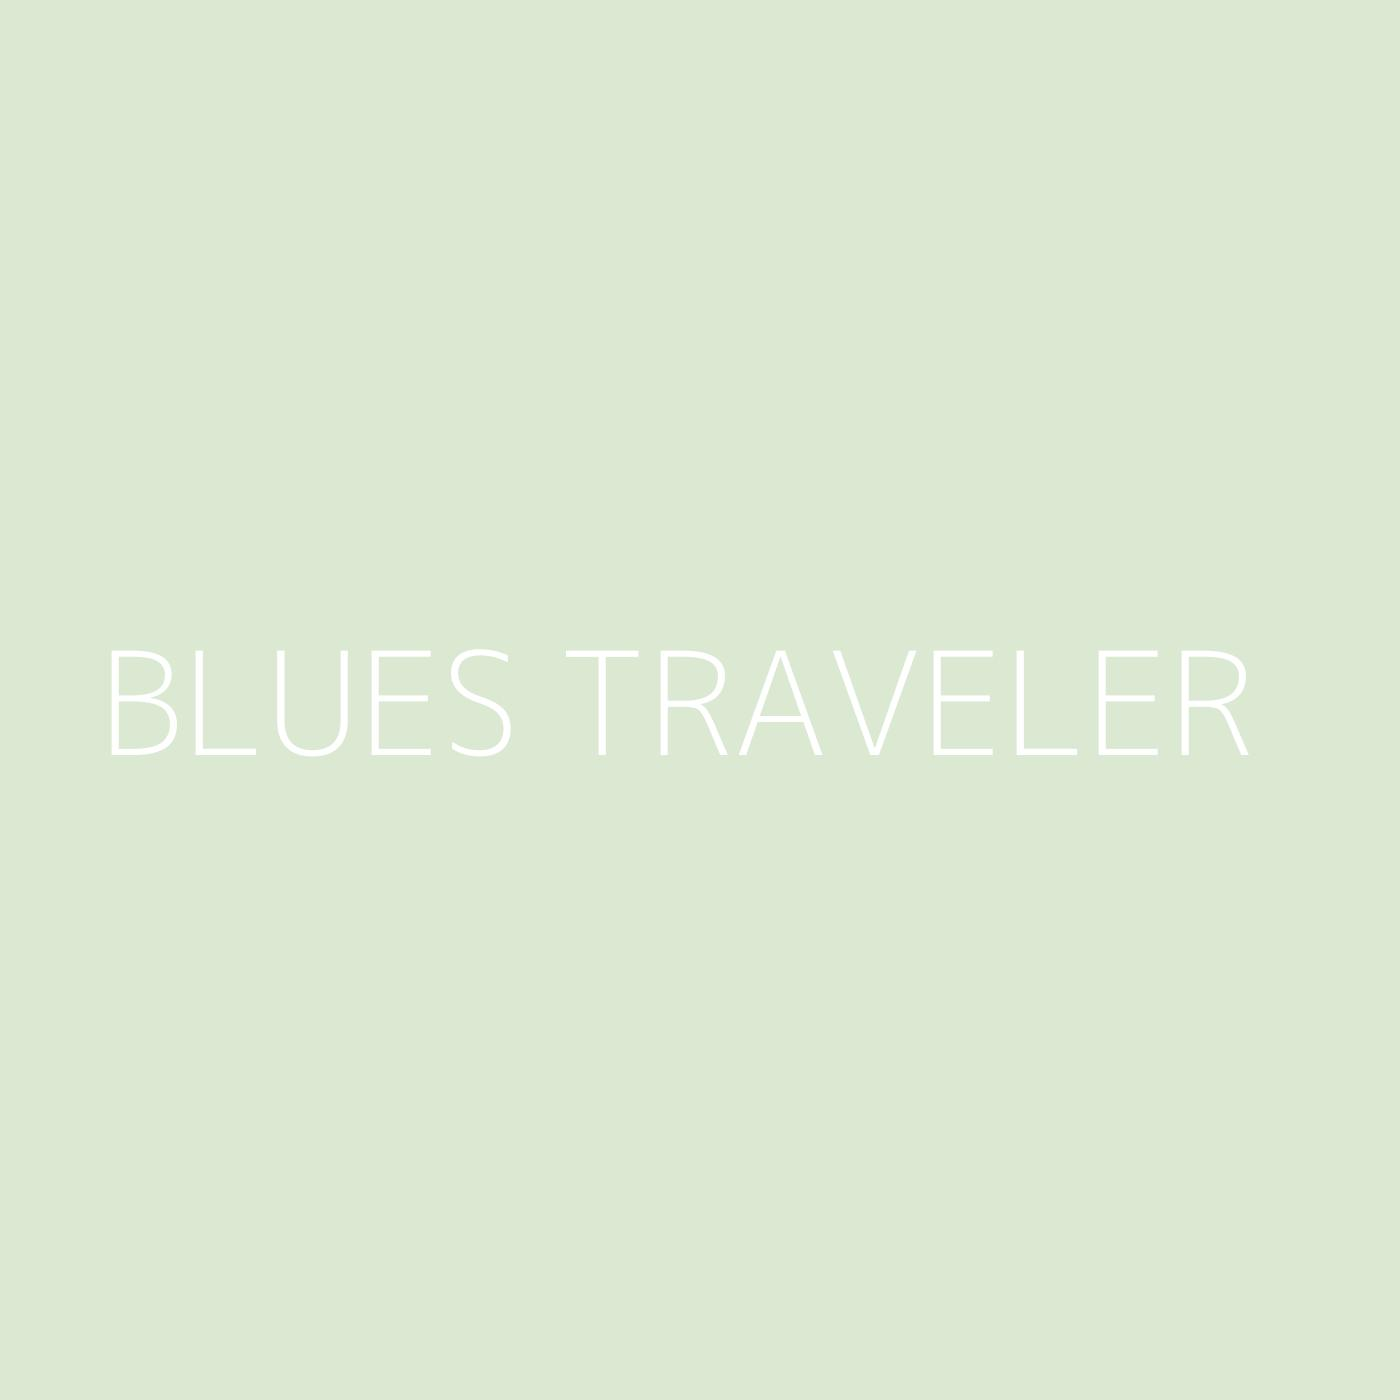 Blues Traveler Playlist Artwork